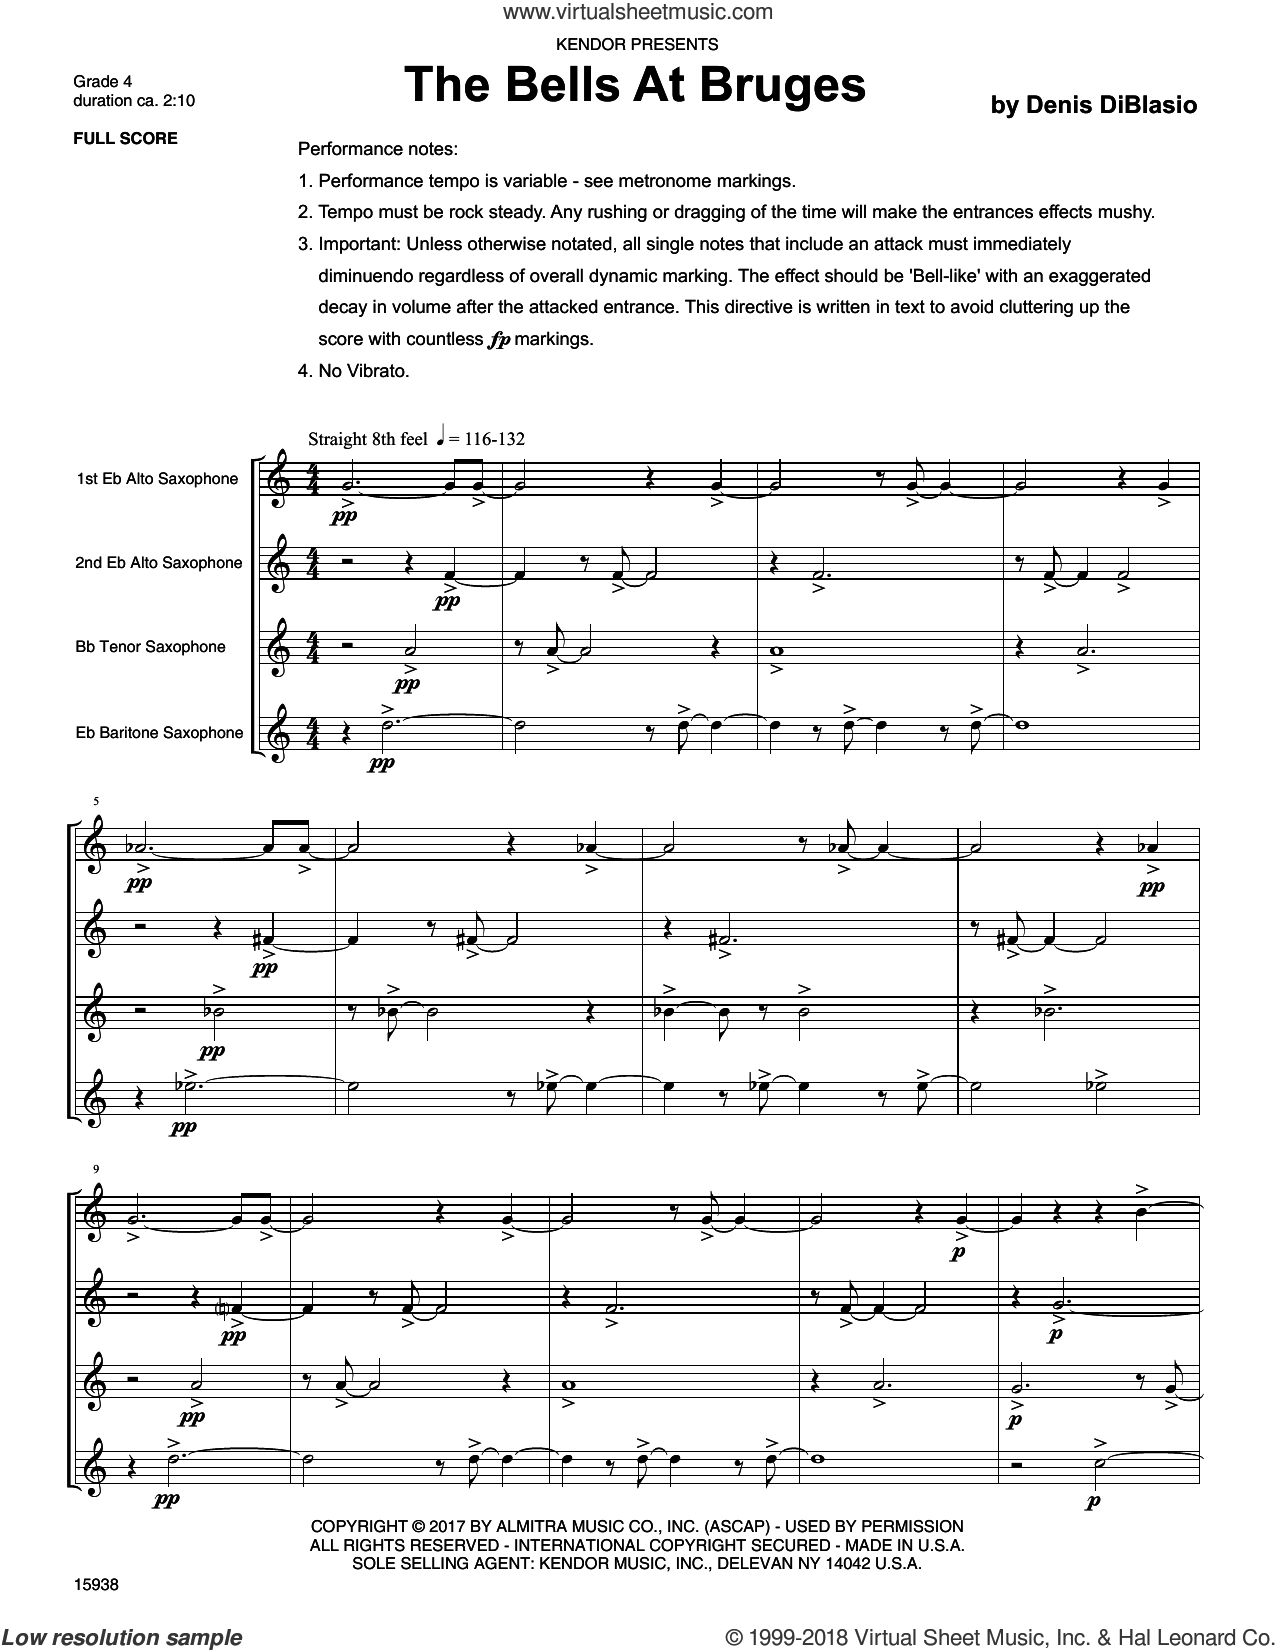 The Bells At Bruges (COMPLETE) sheet music for saxophone quartete by Denis DiBlasio, intermediate skill level